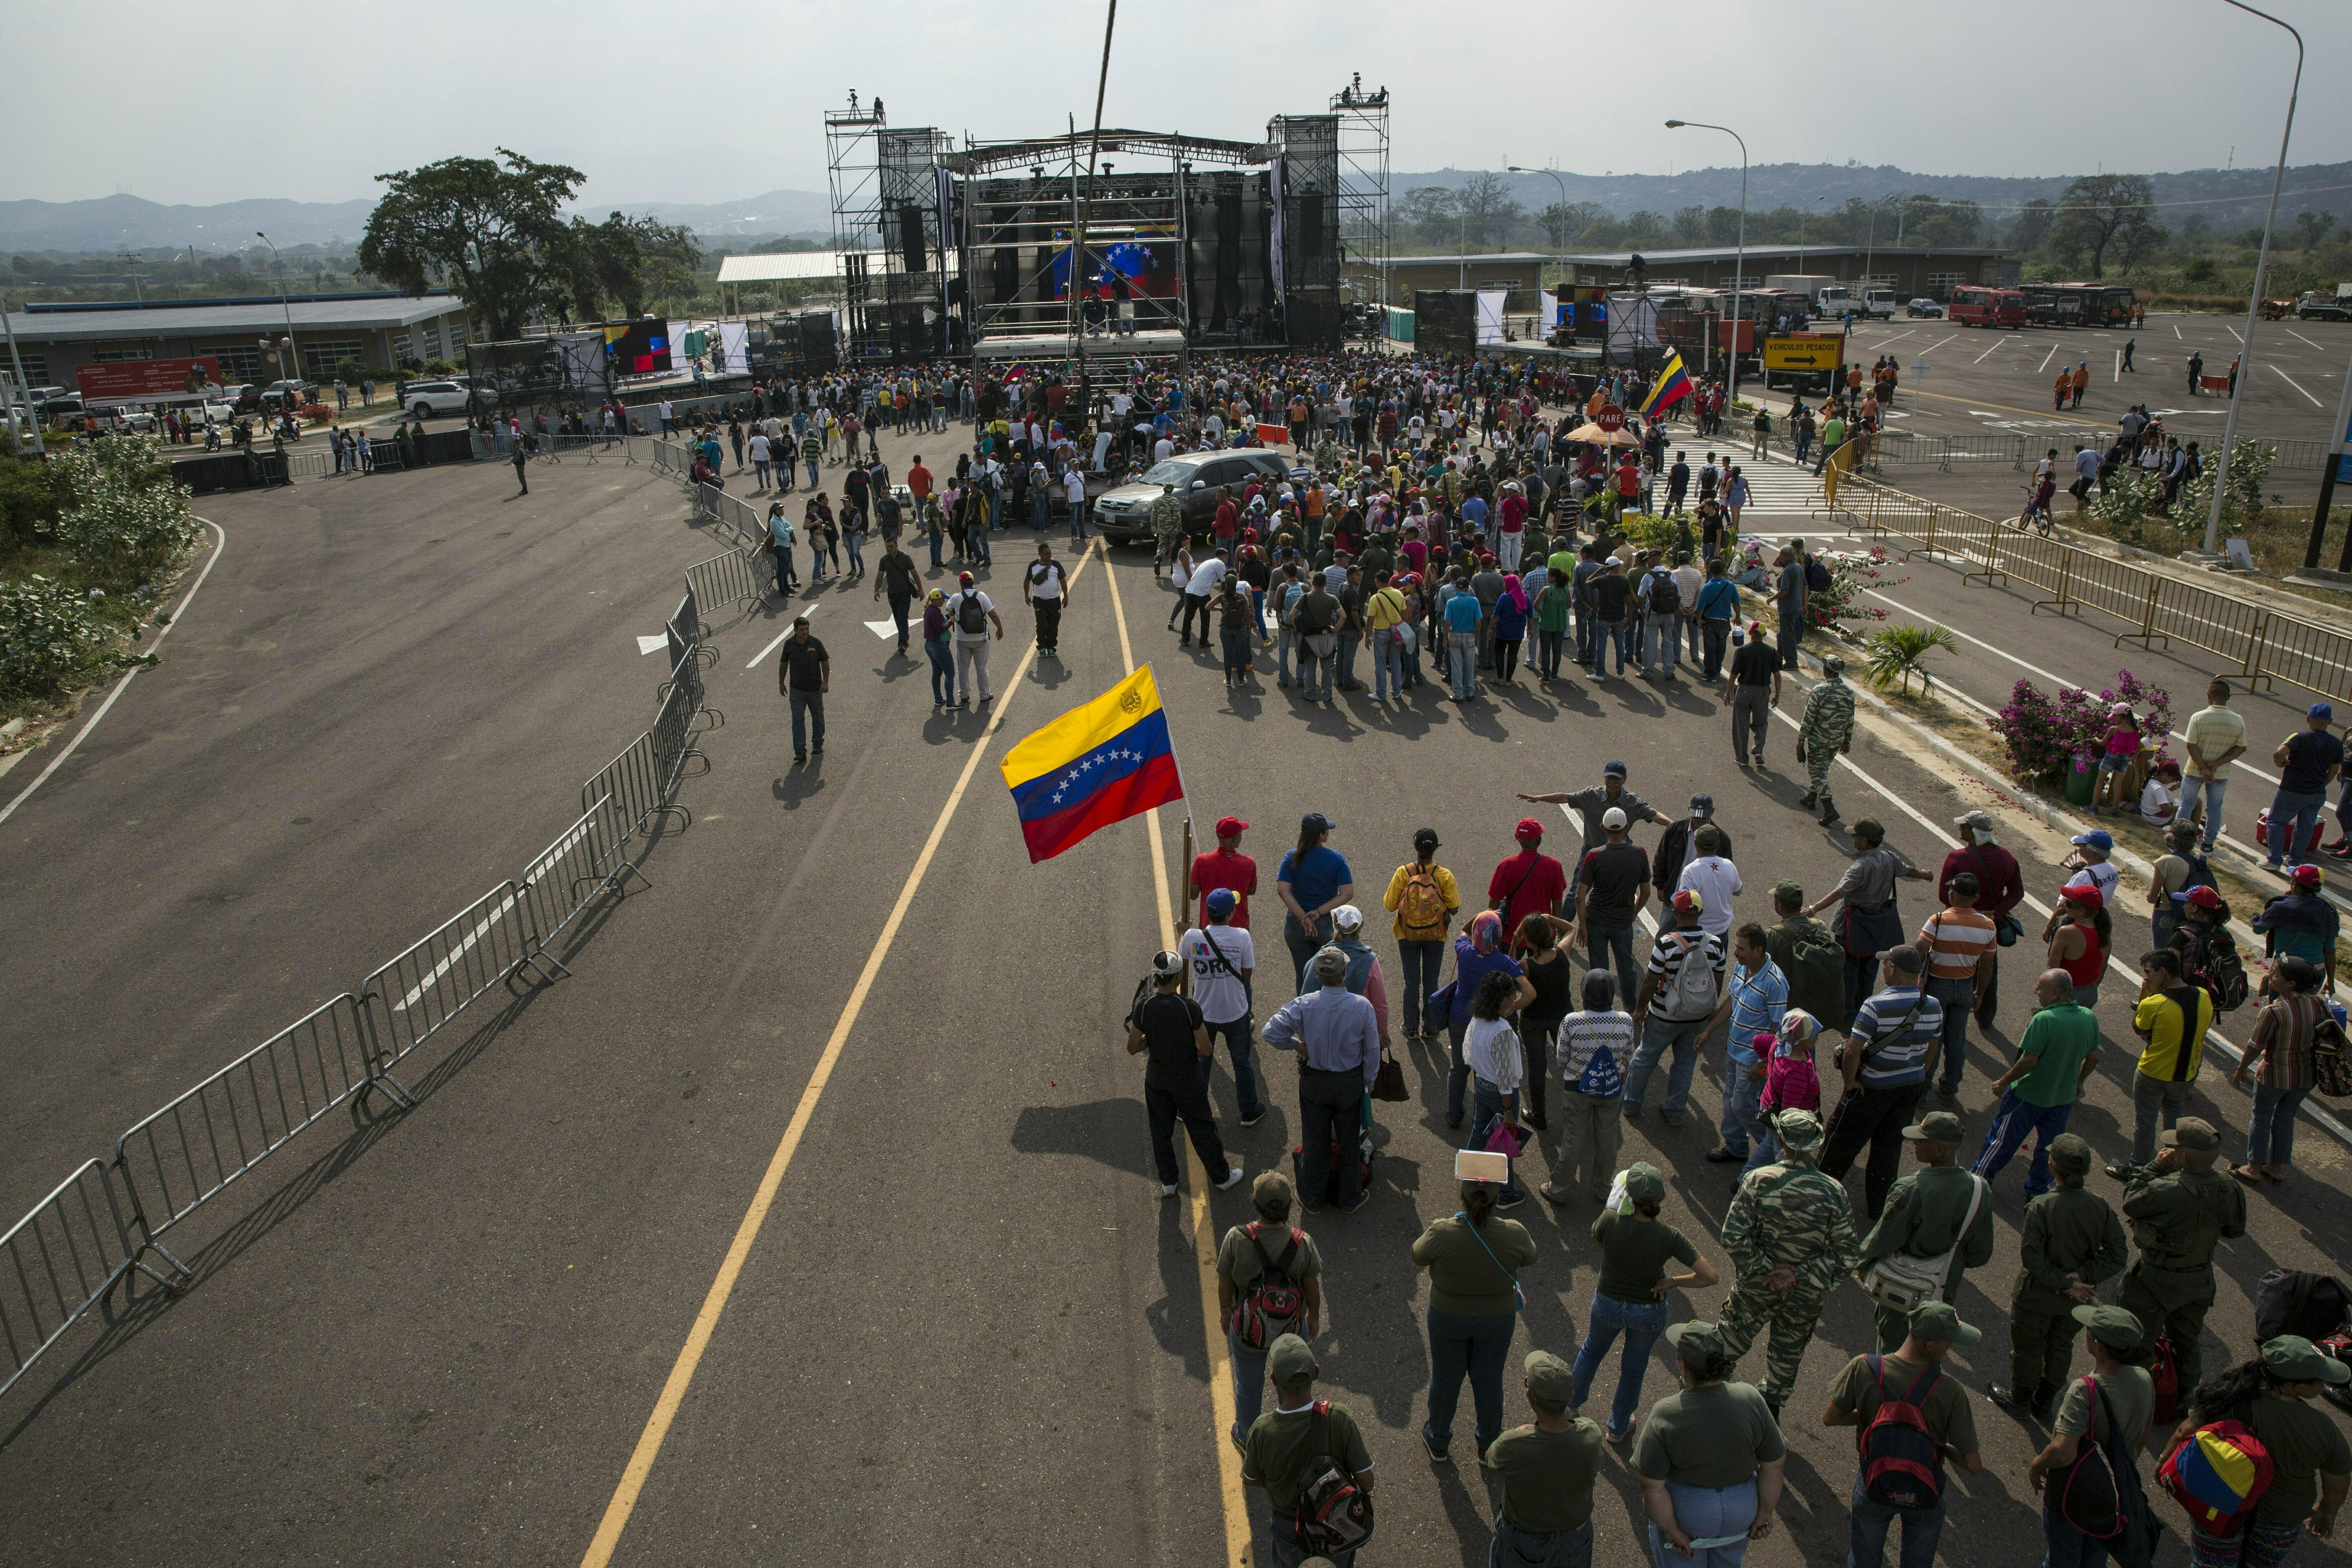 """Government supporters gather during the first day of the """"Hands off Venezuela"""" three-day music festival at the Tienditas International Bridge, in Urena, Venezuela, Friday, Feb. 22, 2019, on the border with Colombia. Venezuela's power struggle is set to convert into a battle of the bands Friday when musicians demanding Nicolas Maduro allow in humanitarian aid and those supporting the embattled leader's refusal sing in rival concerts being held at both sides of a border bridge where tons of donated food and medicine are being stored. (AP Photo/Rodrigo Abd)"""